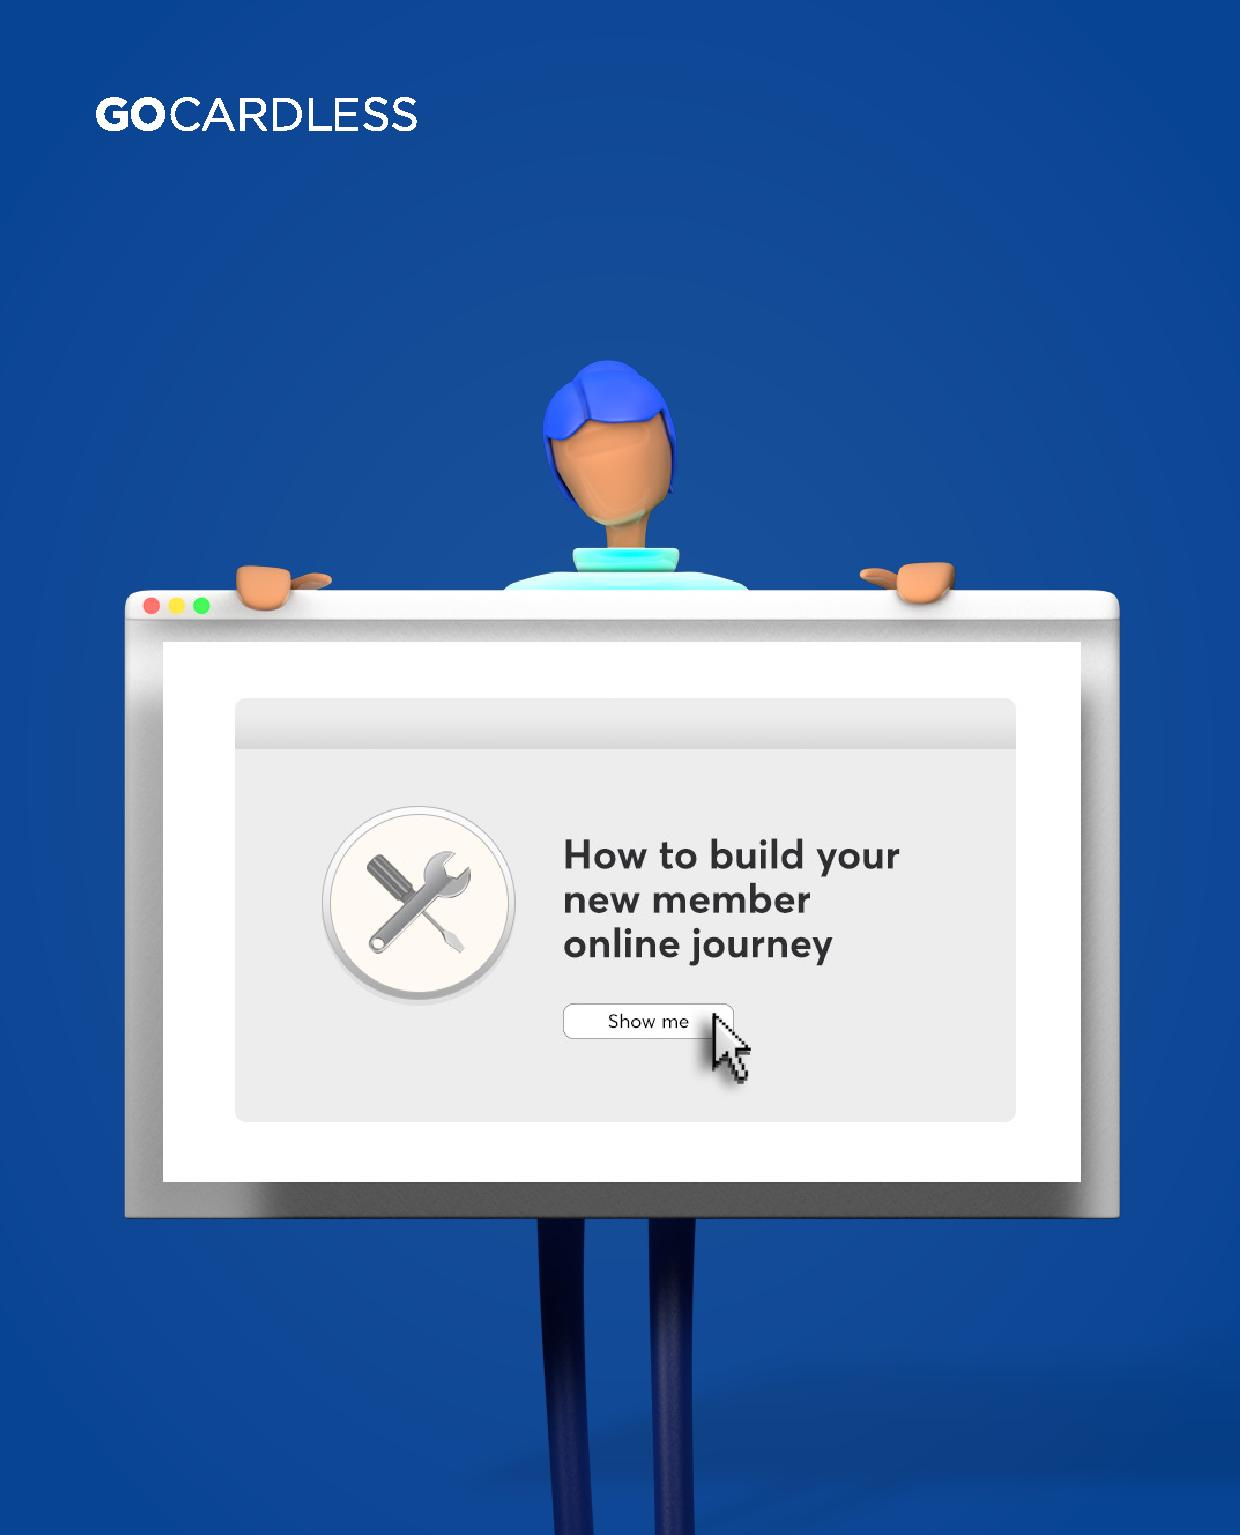 How to build your new member online journey.